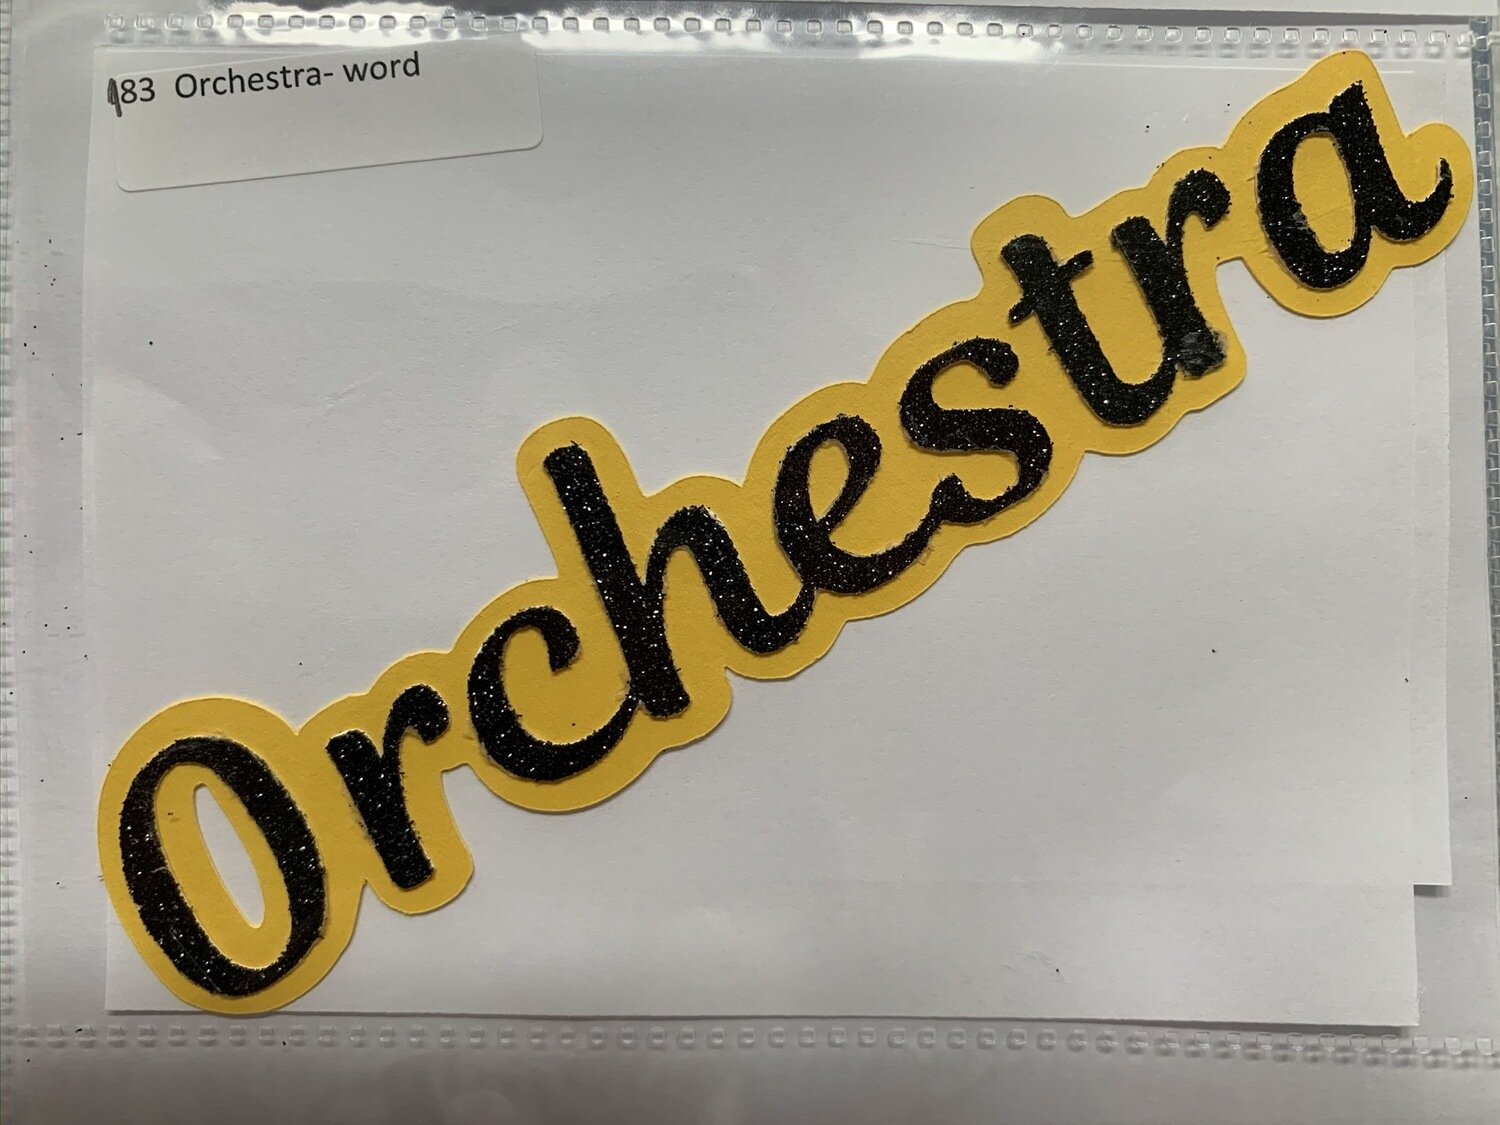 Orchestra- word